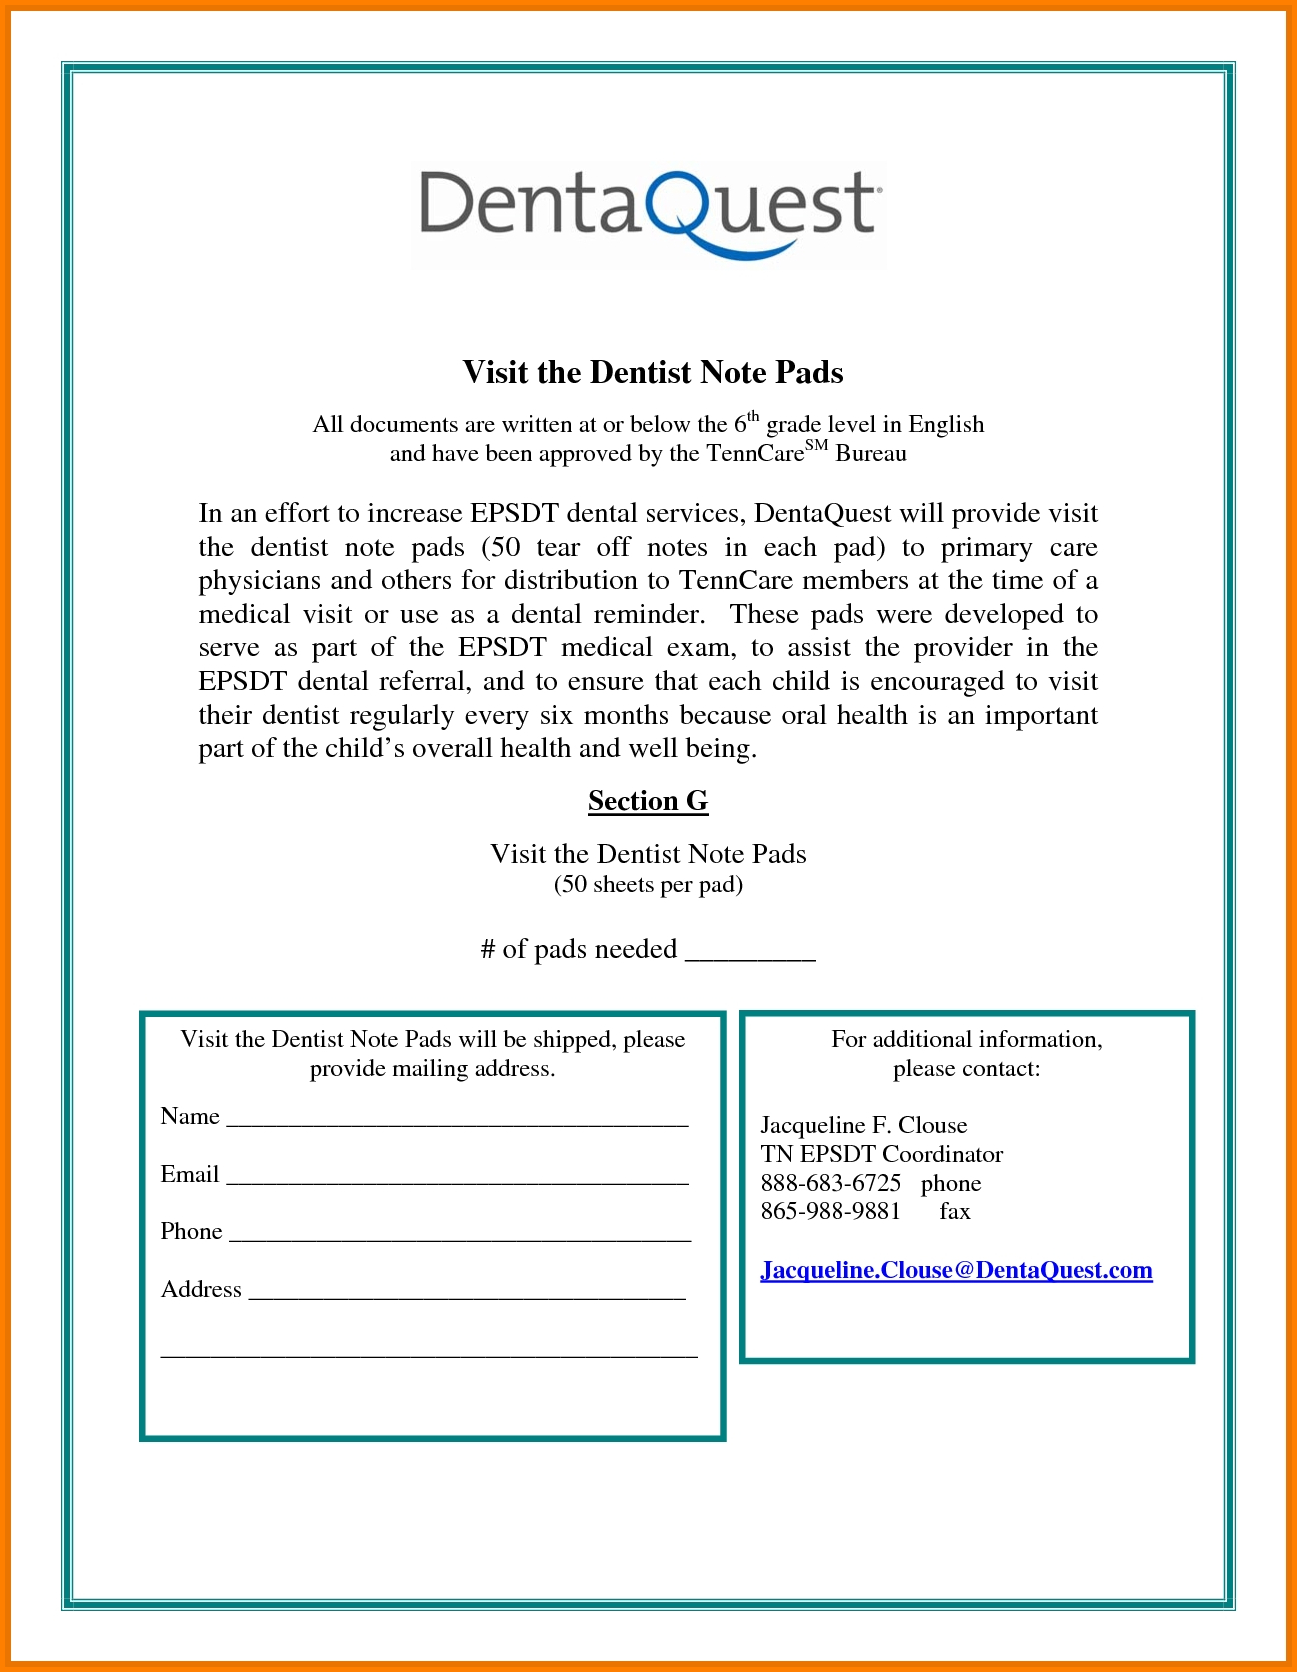 043 Dentist Note Templates Franklinfire Co For Dental Notes Regarding Dentist Note Template